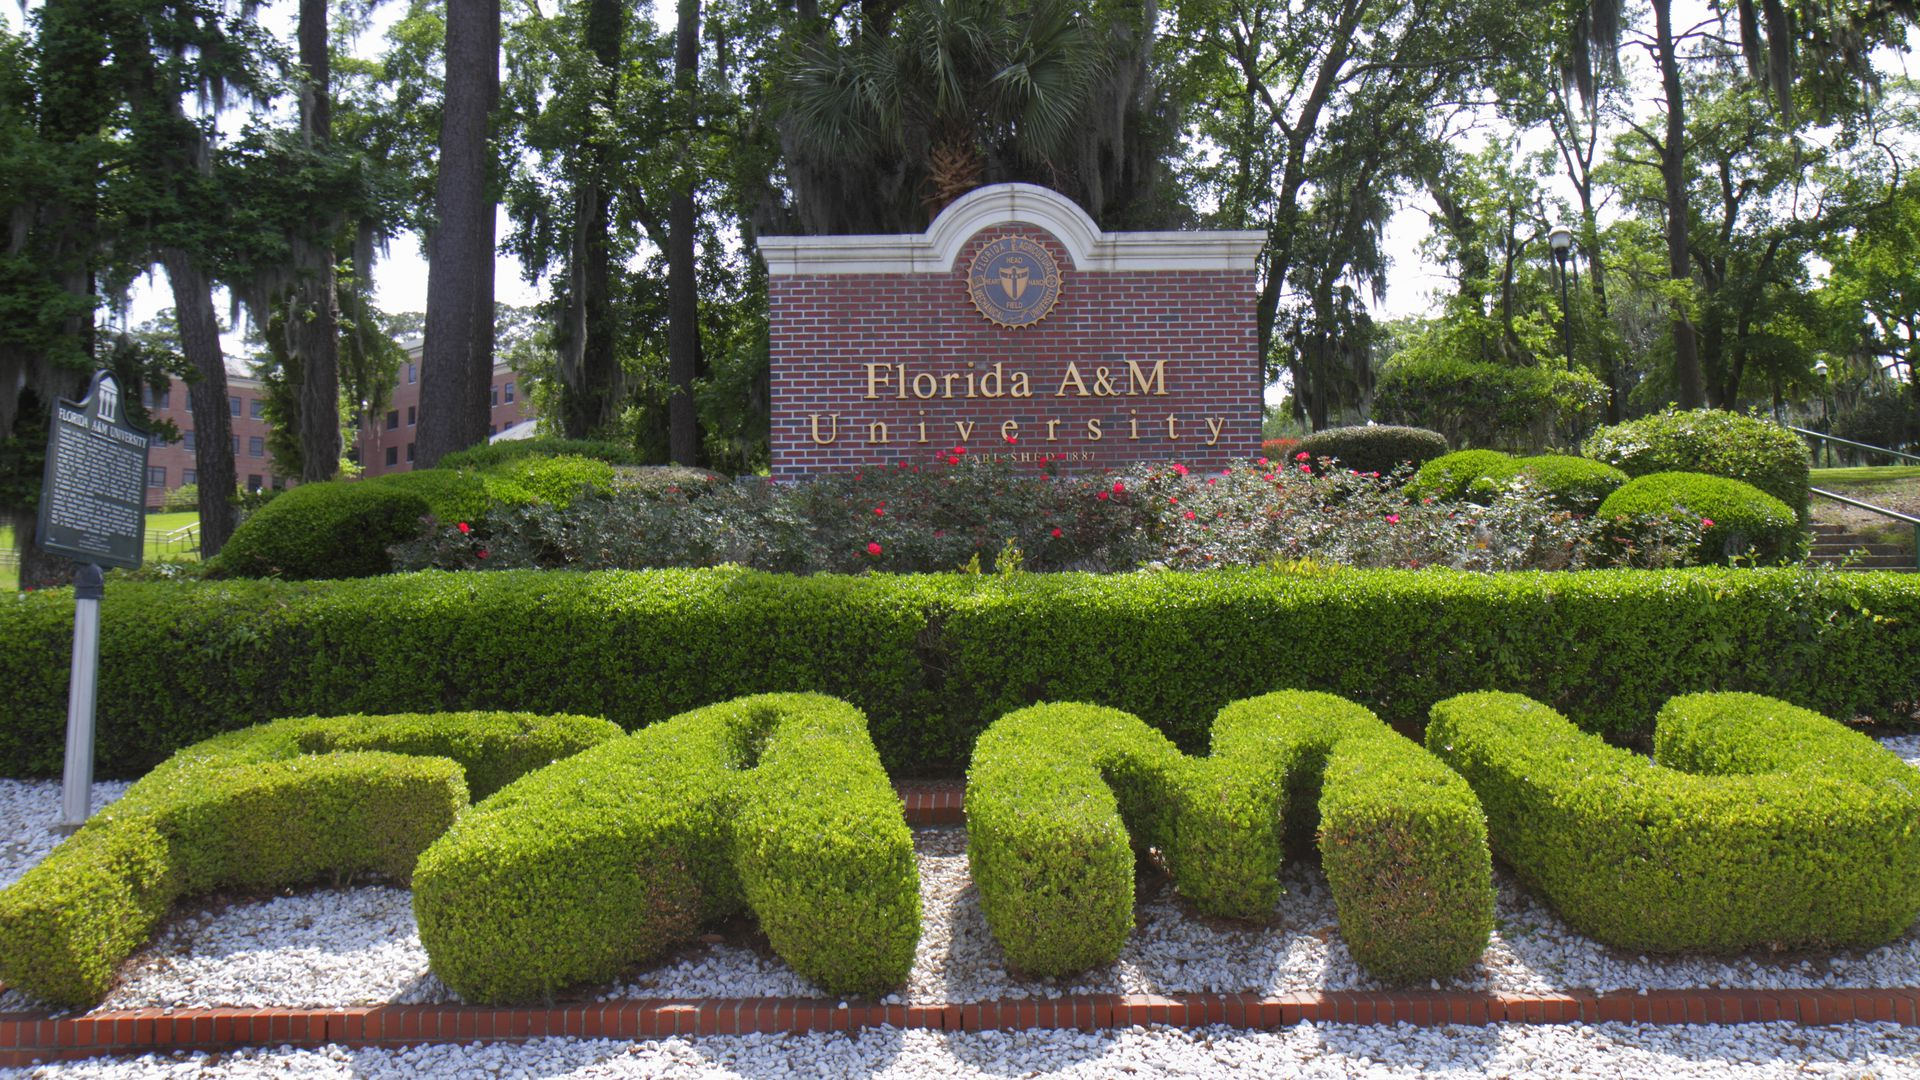 """F A M U"" spelled out in bushes"